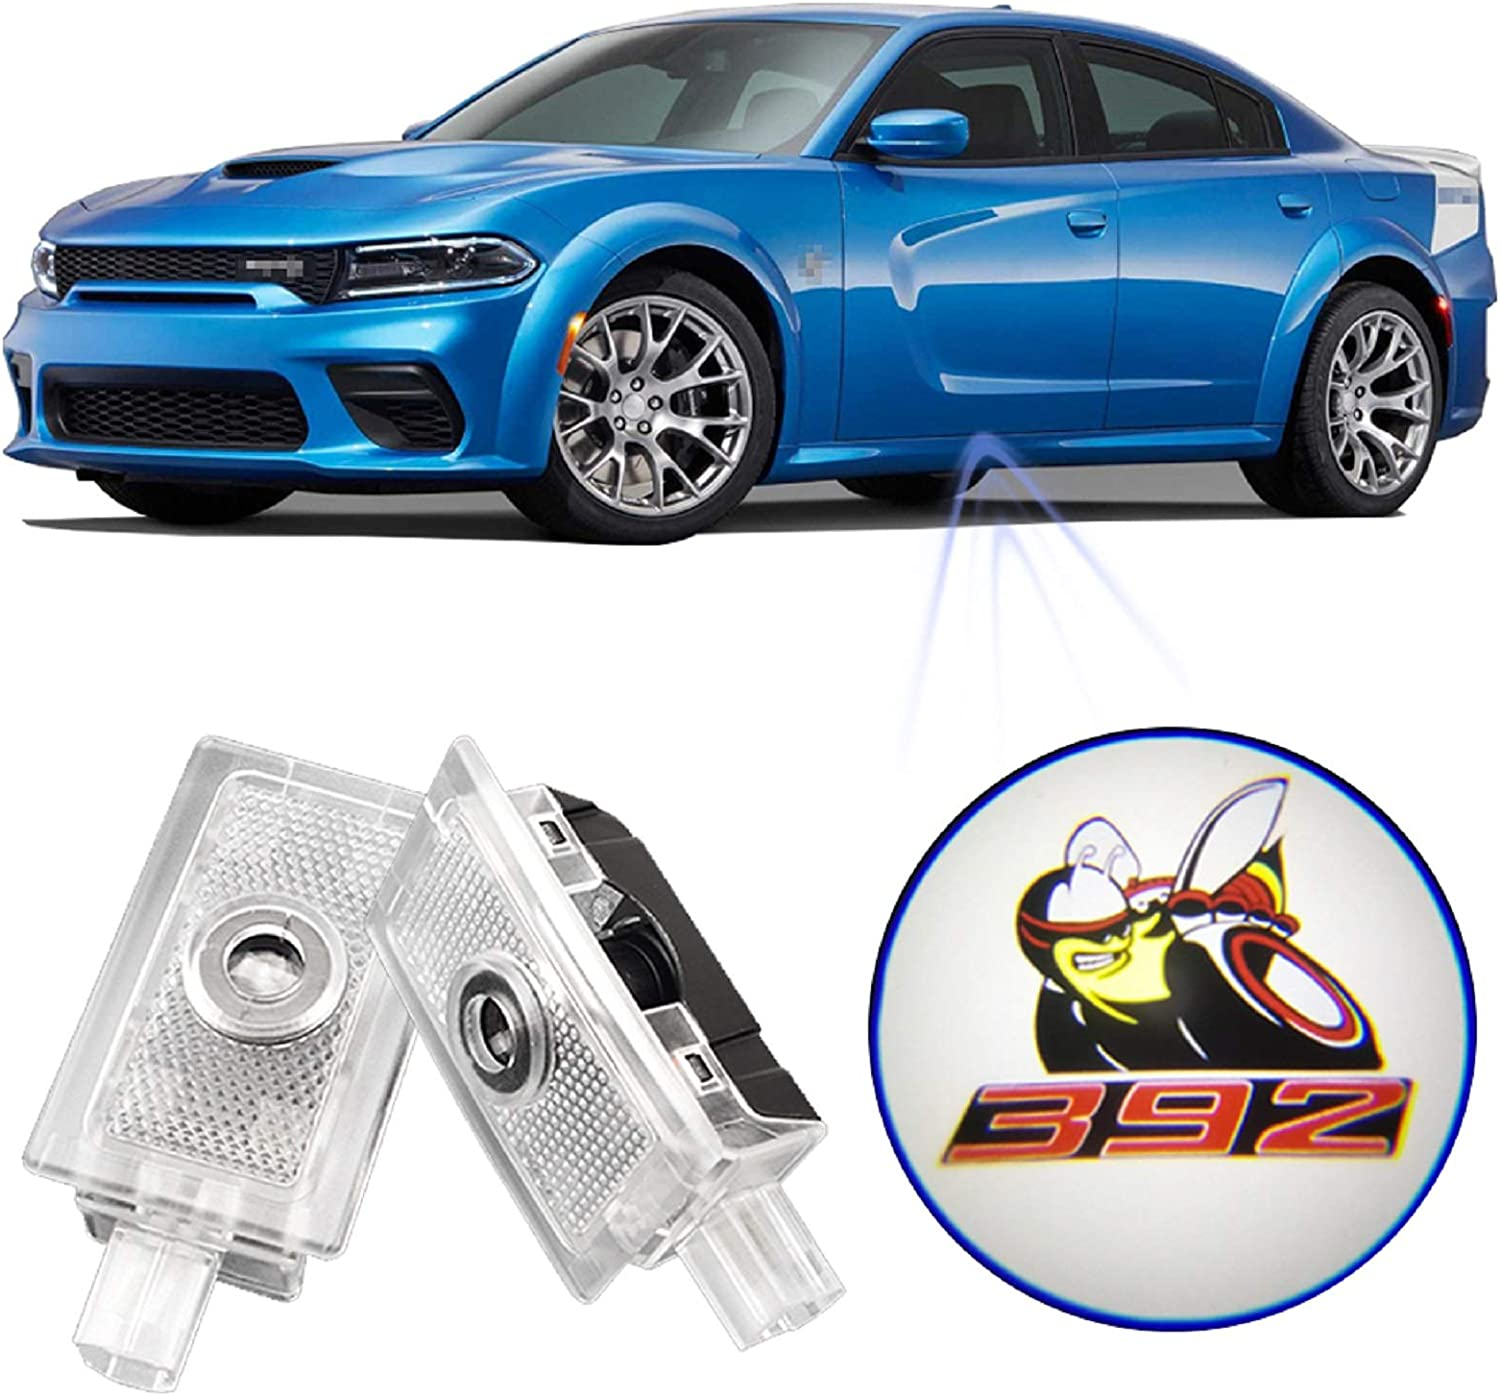 amazon com wilnara car door dodge charger led logo projector ghost shadow courtesy step lamp puddle light for charger 392 scat pack no1 automotive wilnara car door dodge charger led logo projector ghost shadow courtesy step lamp puddle light for charger 392 scat pack no1